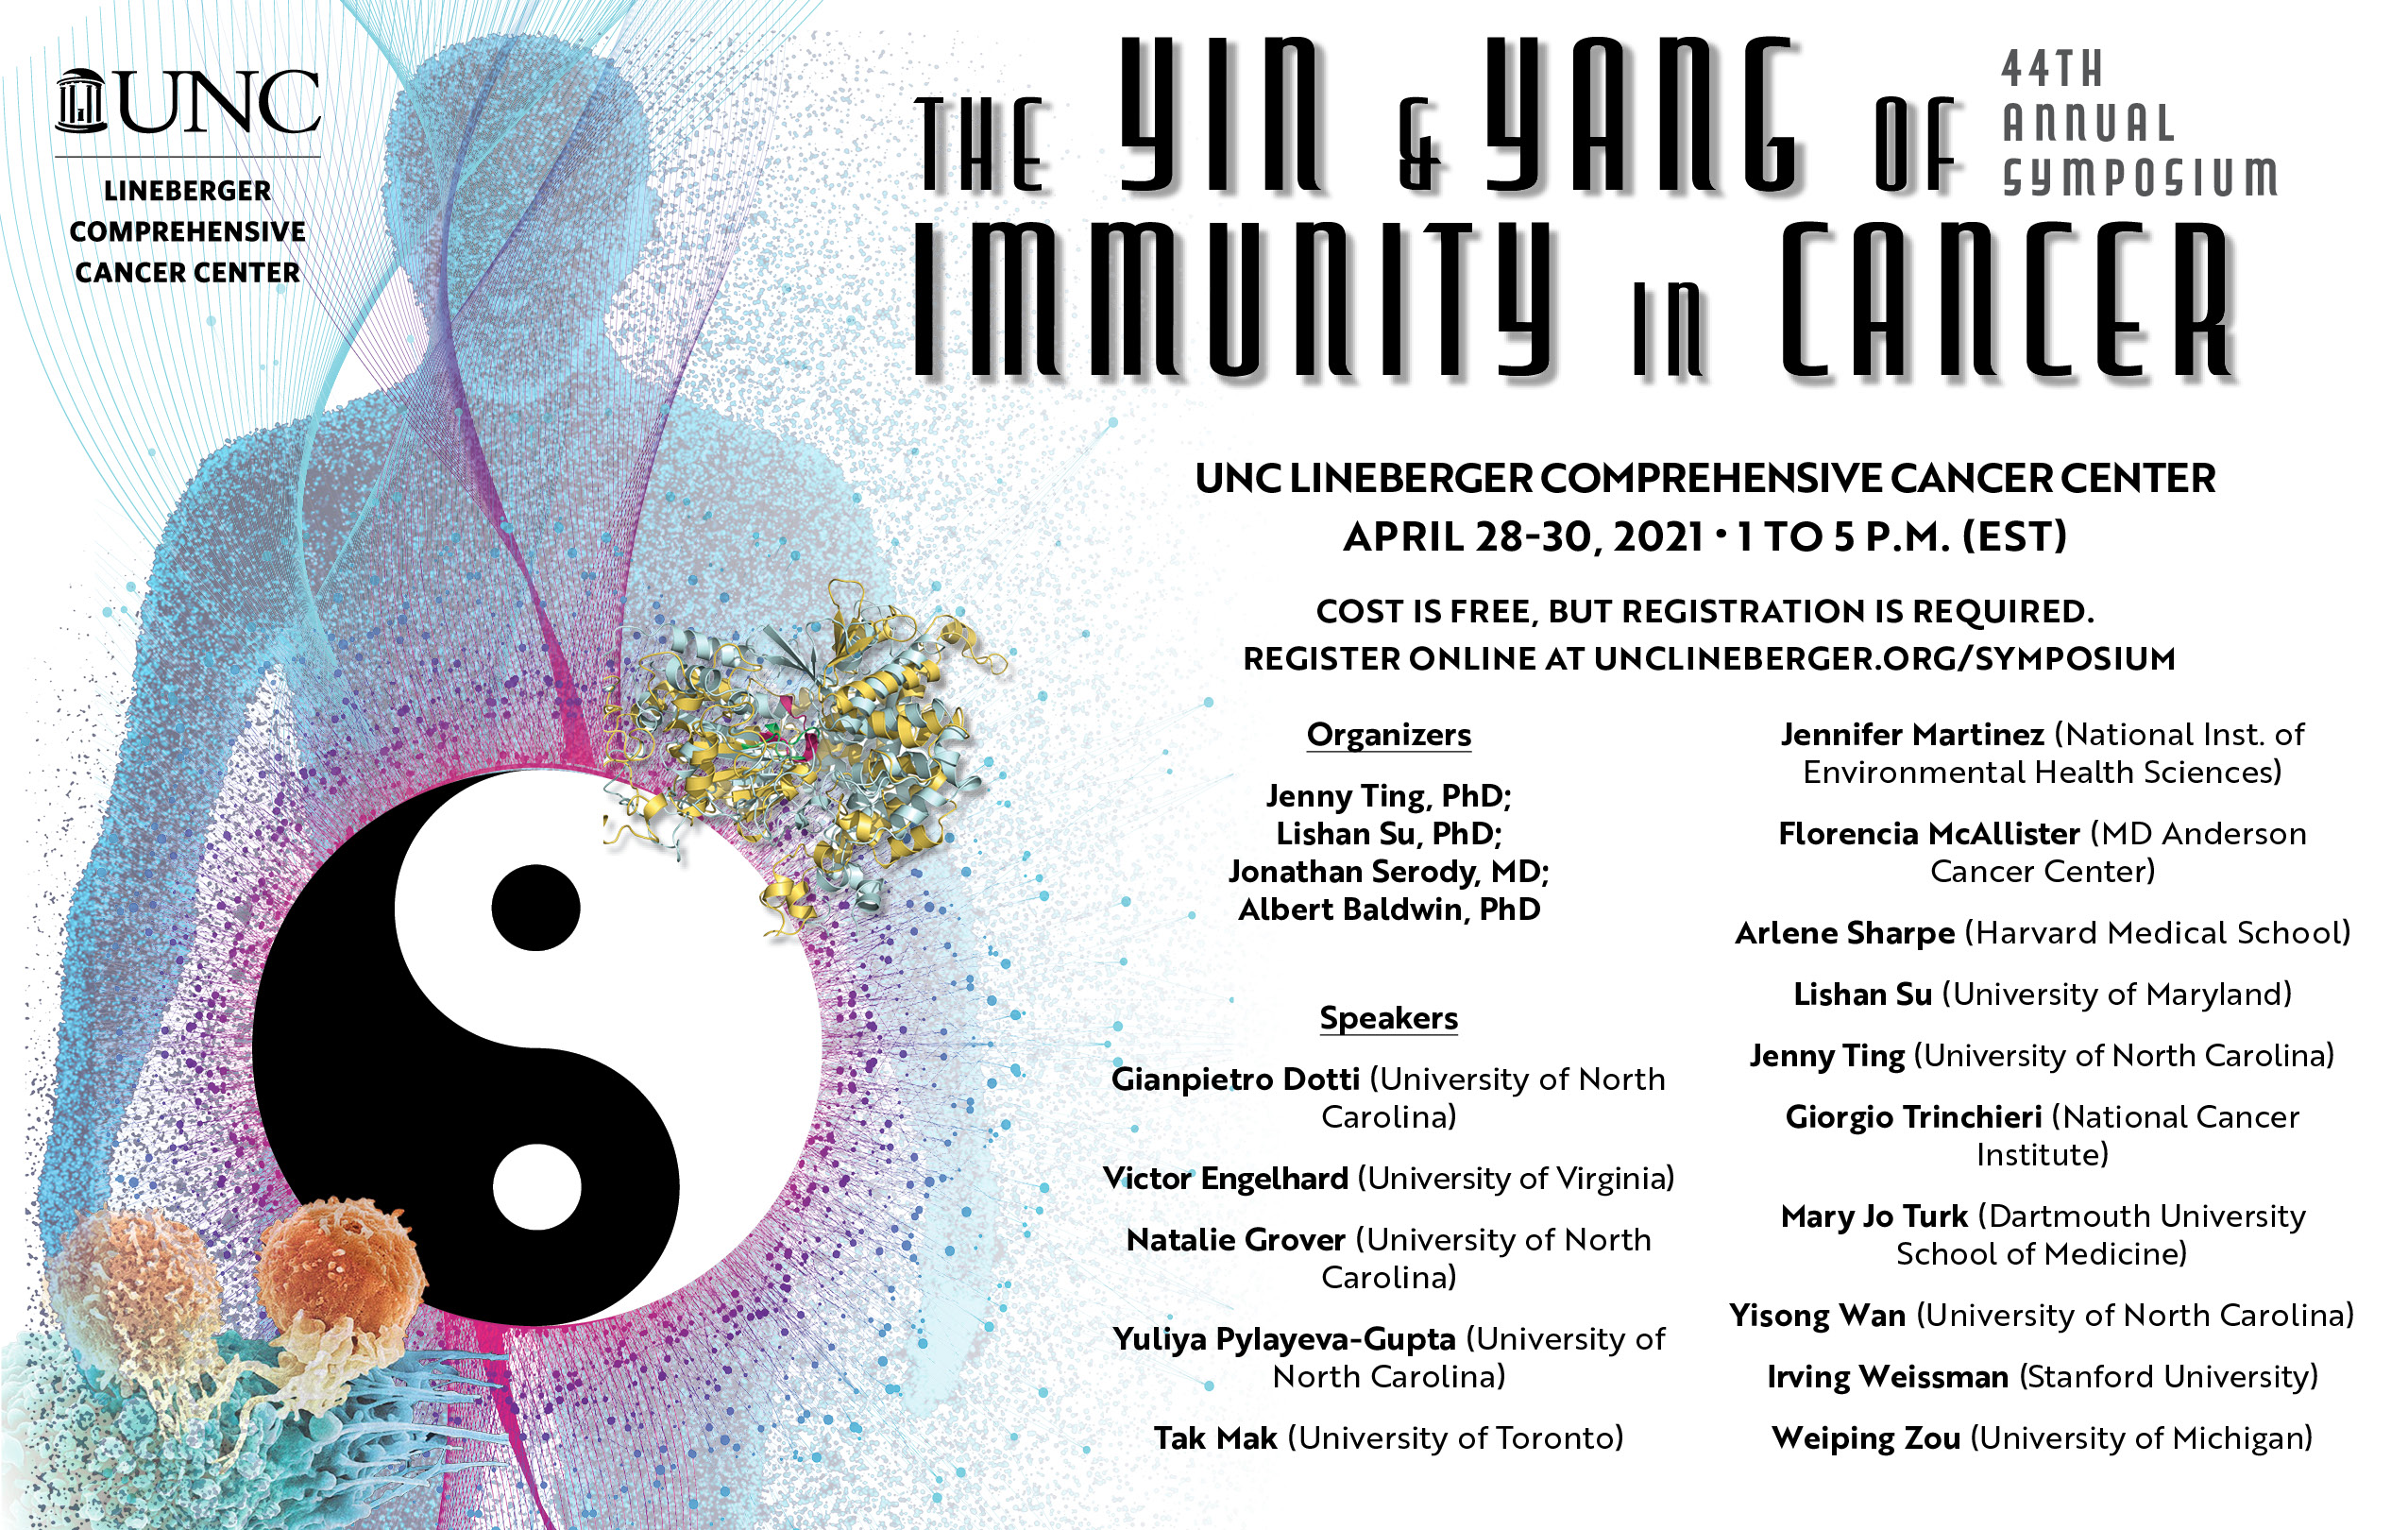 44th annual Lineberger Symposium: The Yin and Yang of Immunity in Cancer